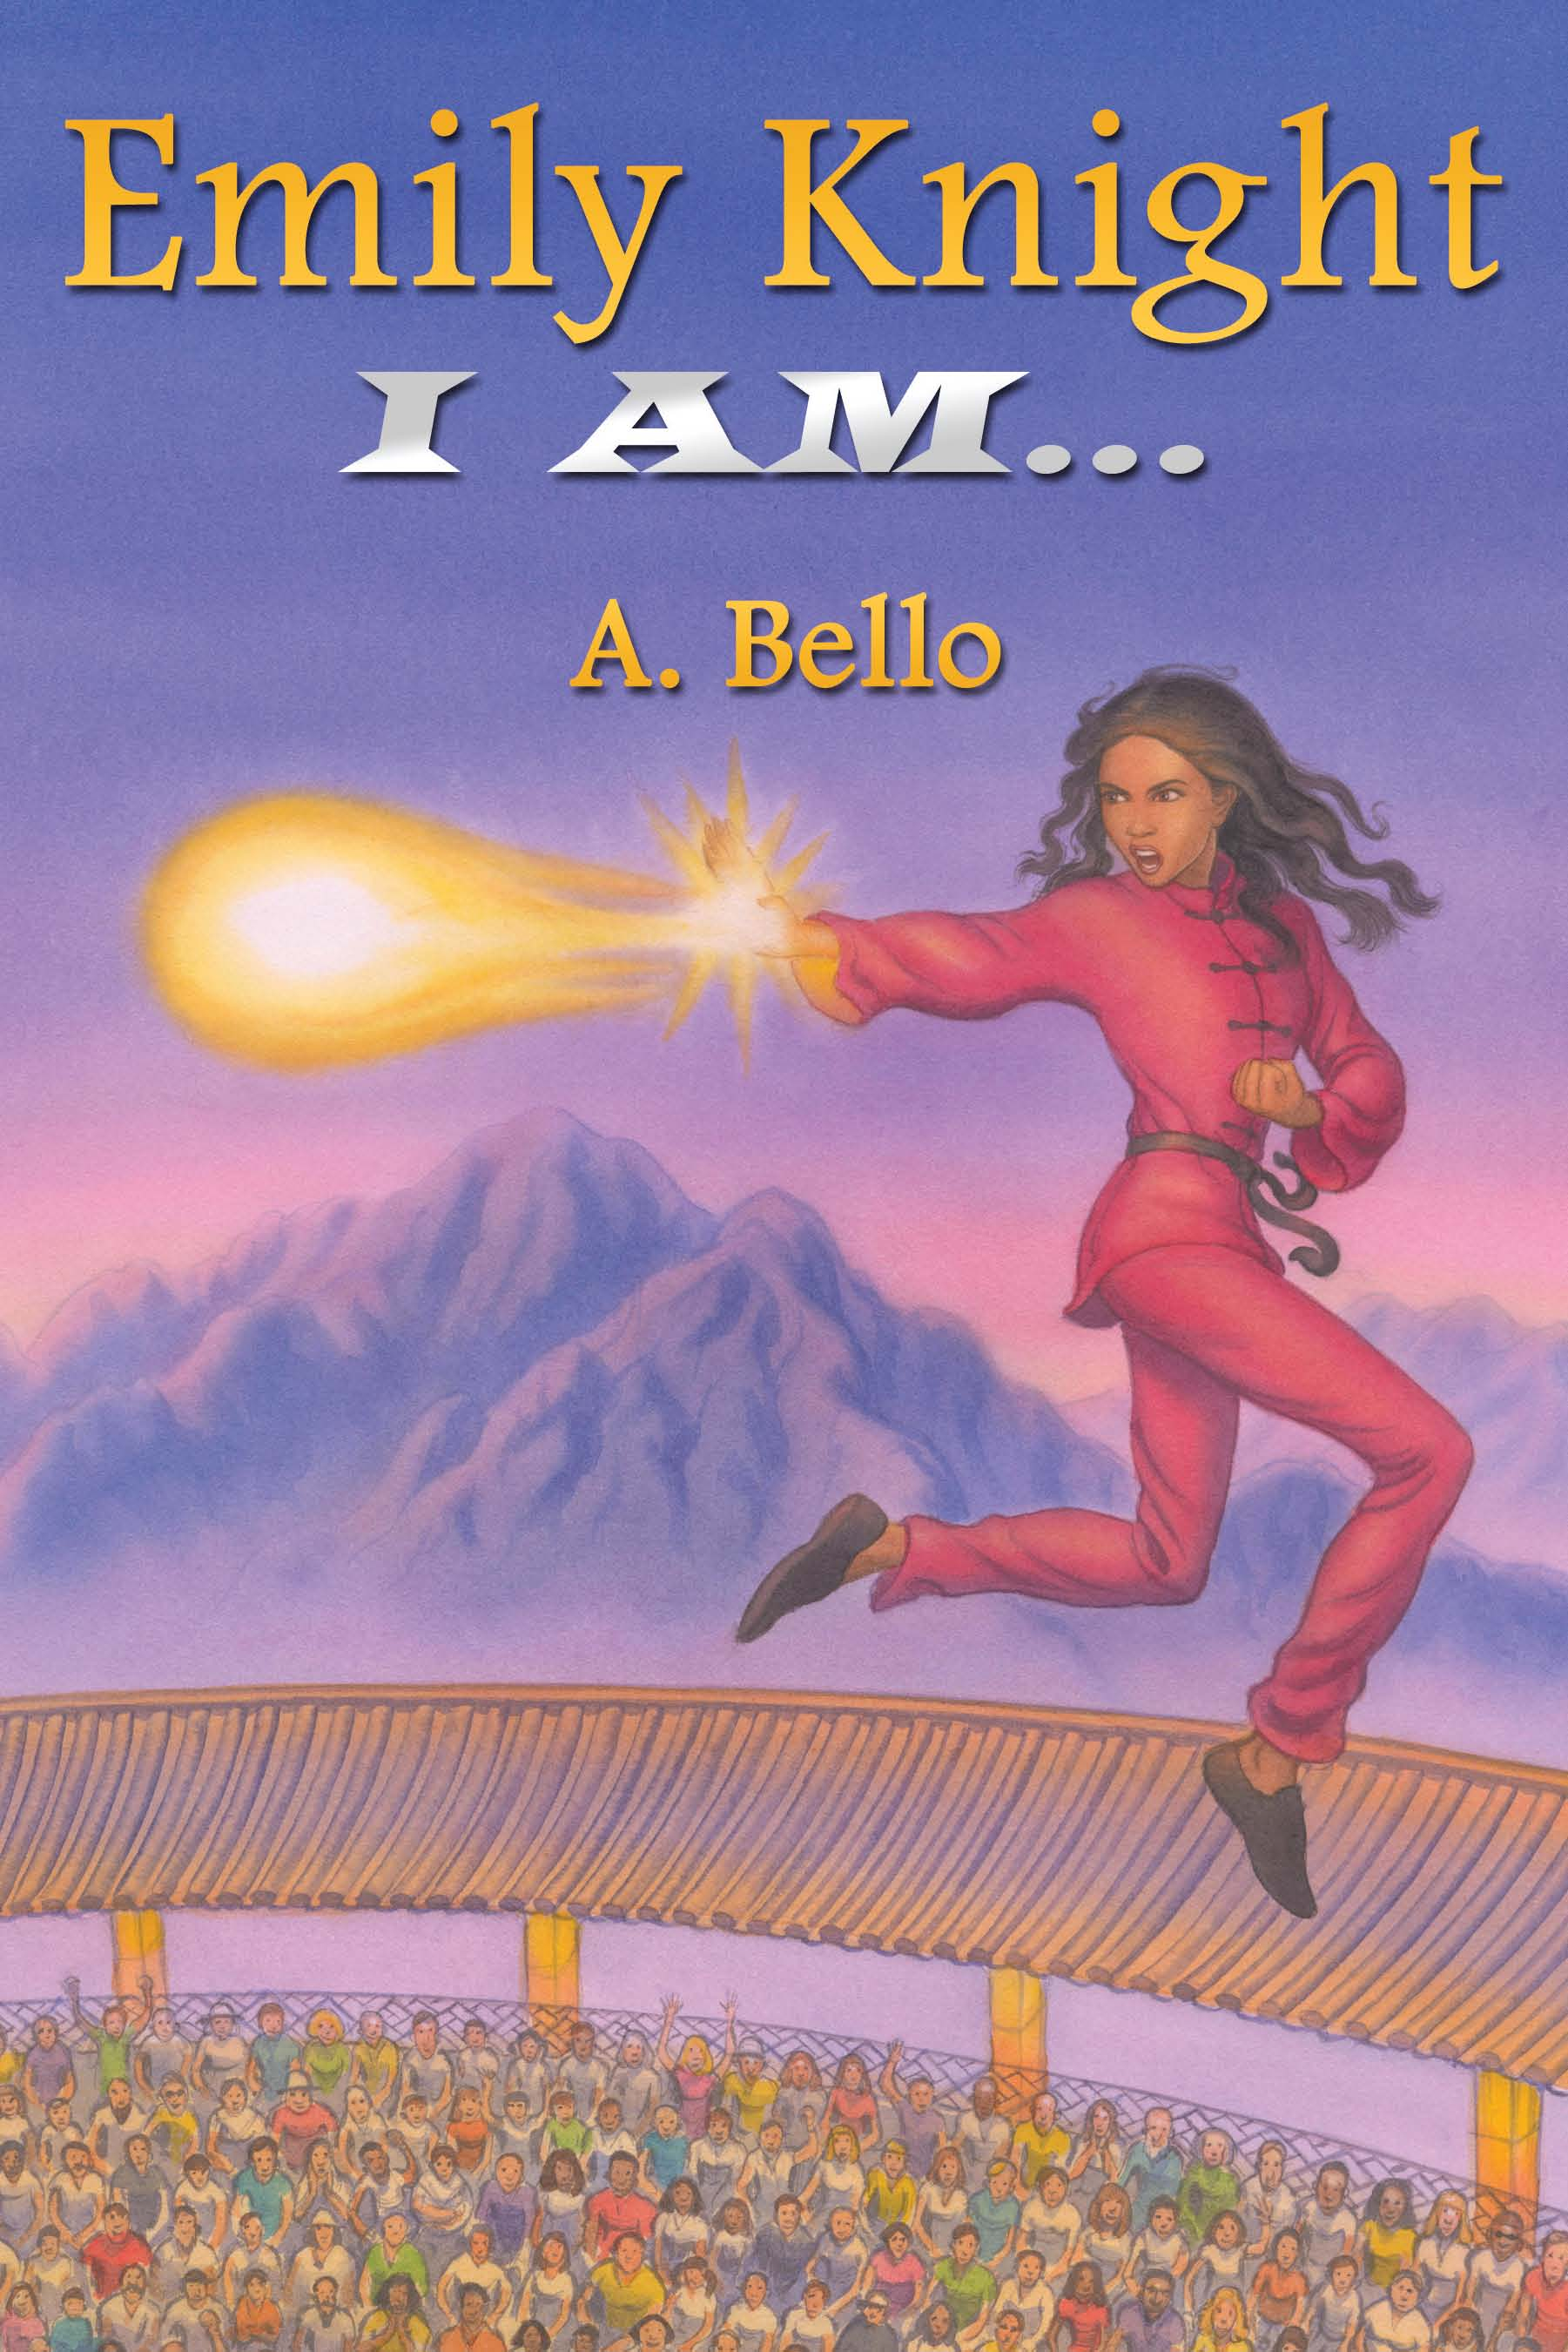 Author A. Bello: writing children's books